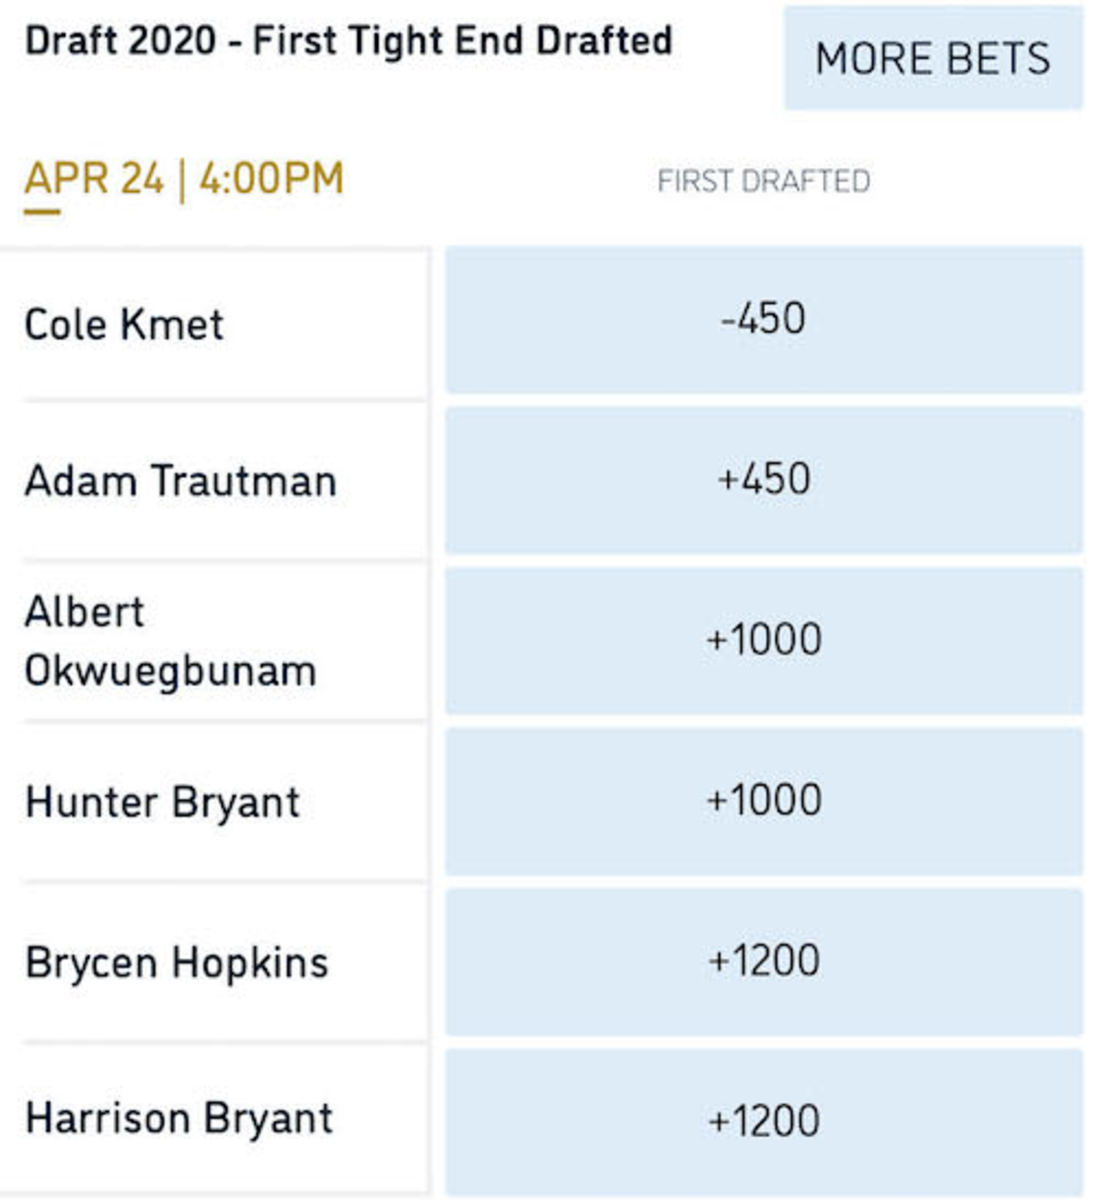 Odds courtesy of William Hill